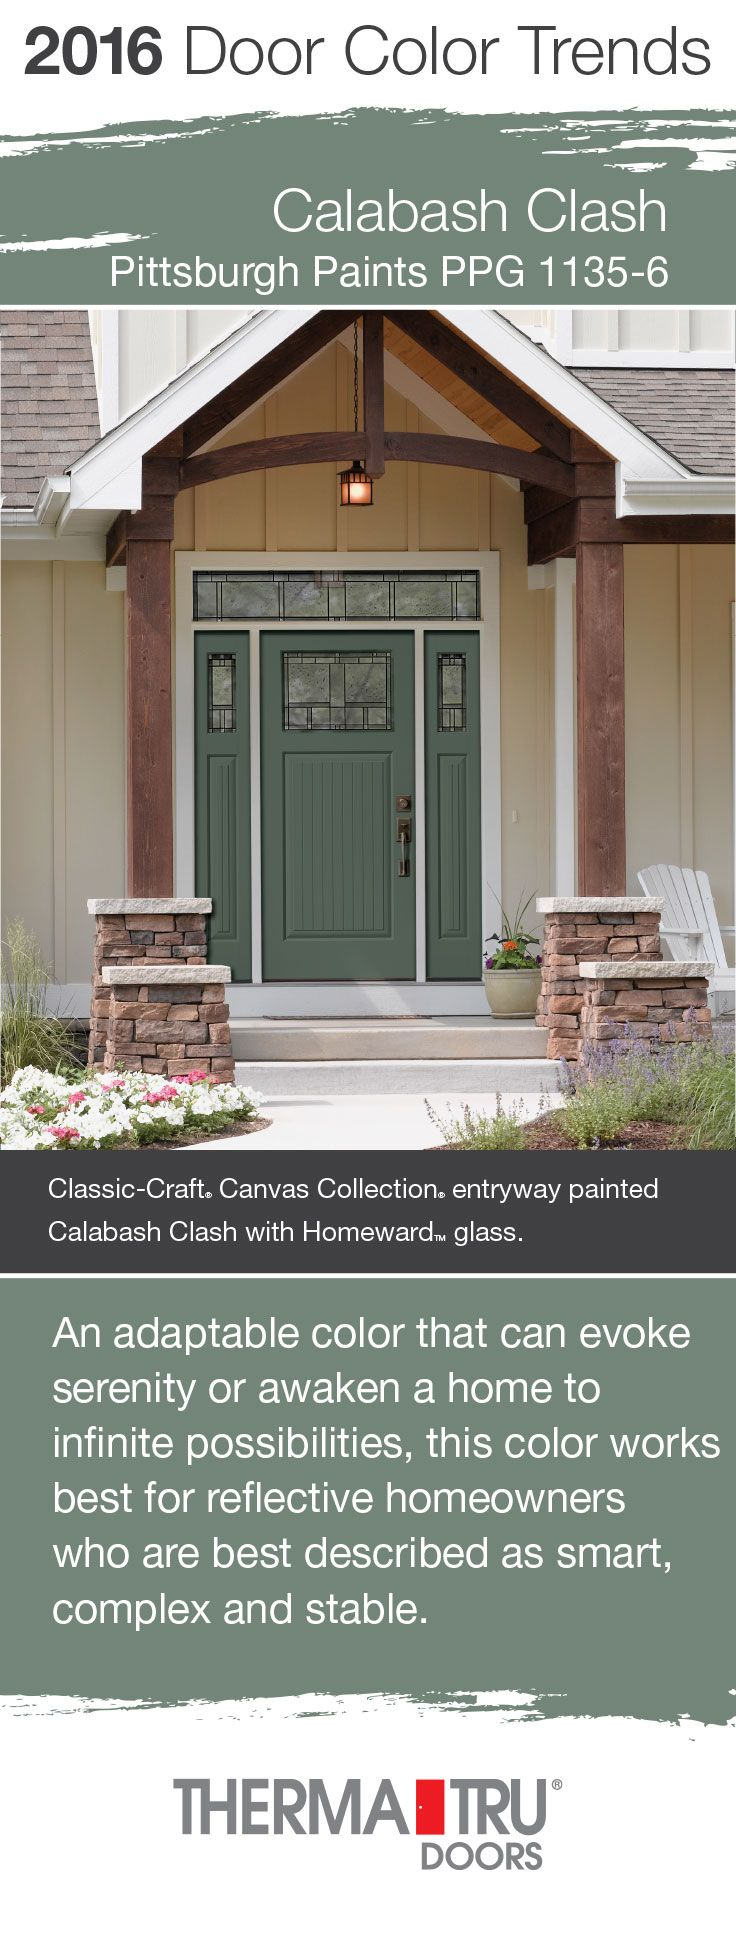 Calabash Clash by Pittsburgh Paints – one of the front door color trends for 2016 – shown here on a Classic-Craft Canvas Collection door from Therma-Tru.  #FrontDoor #CurbAppeal #Color  http://www.thermatru.com